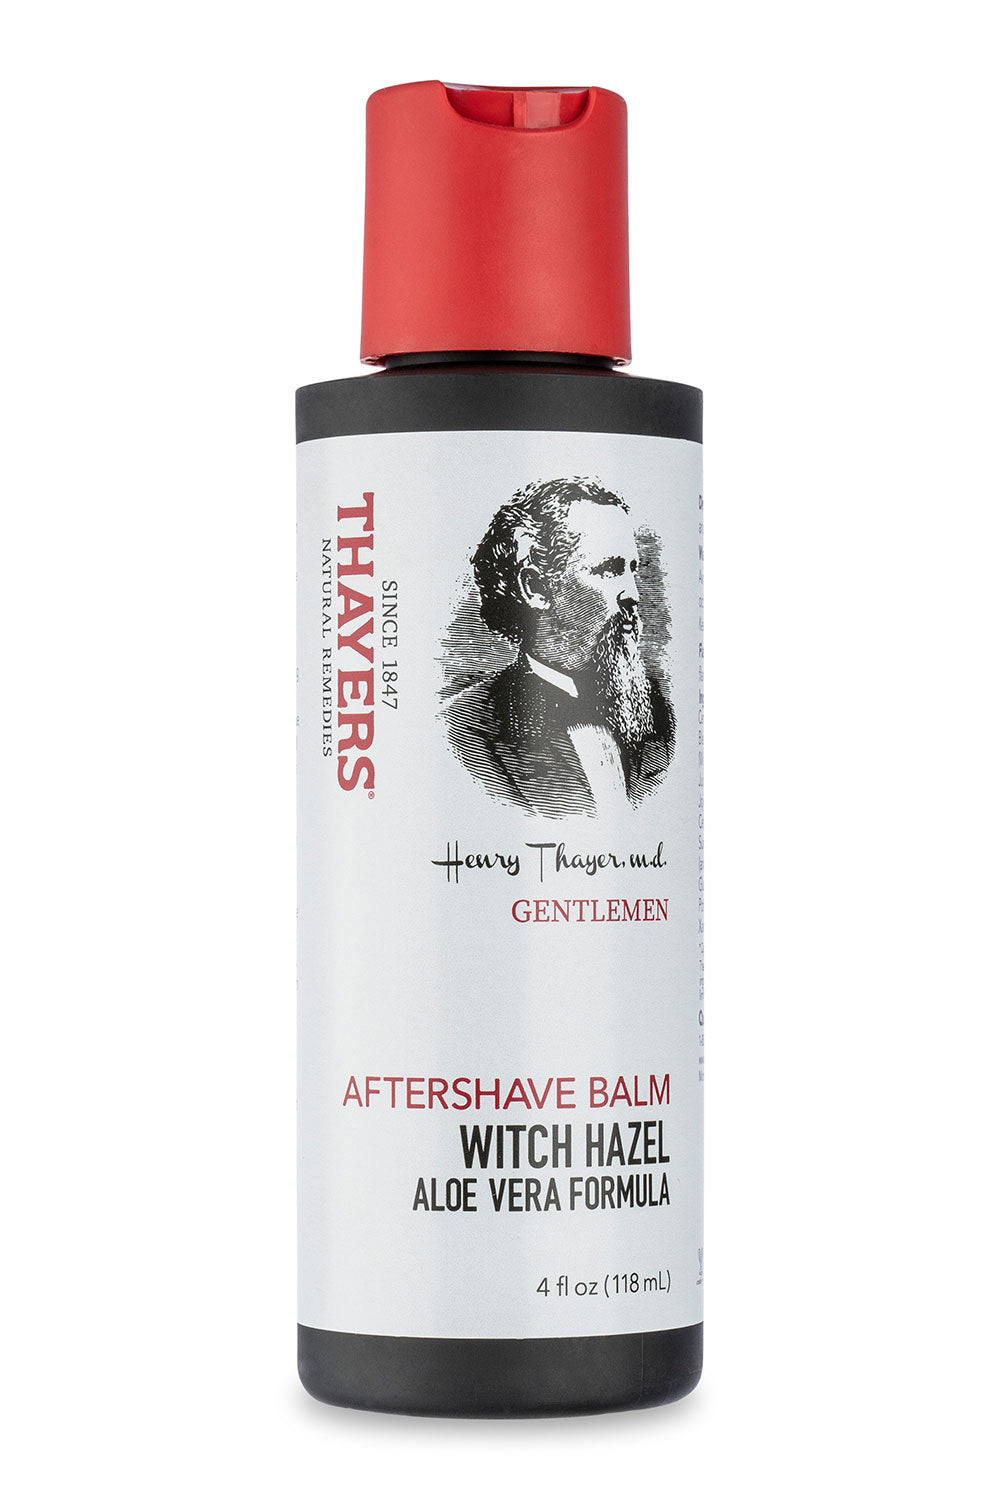 Thayers Witch Hazel Men's After Shave Balm with Aloe Vera